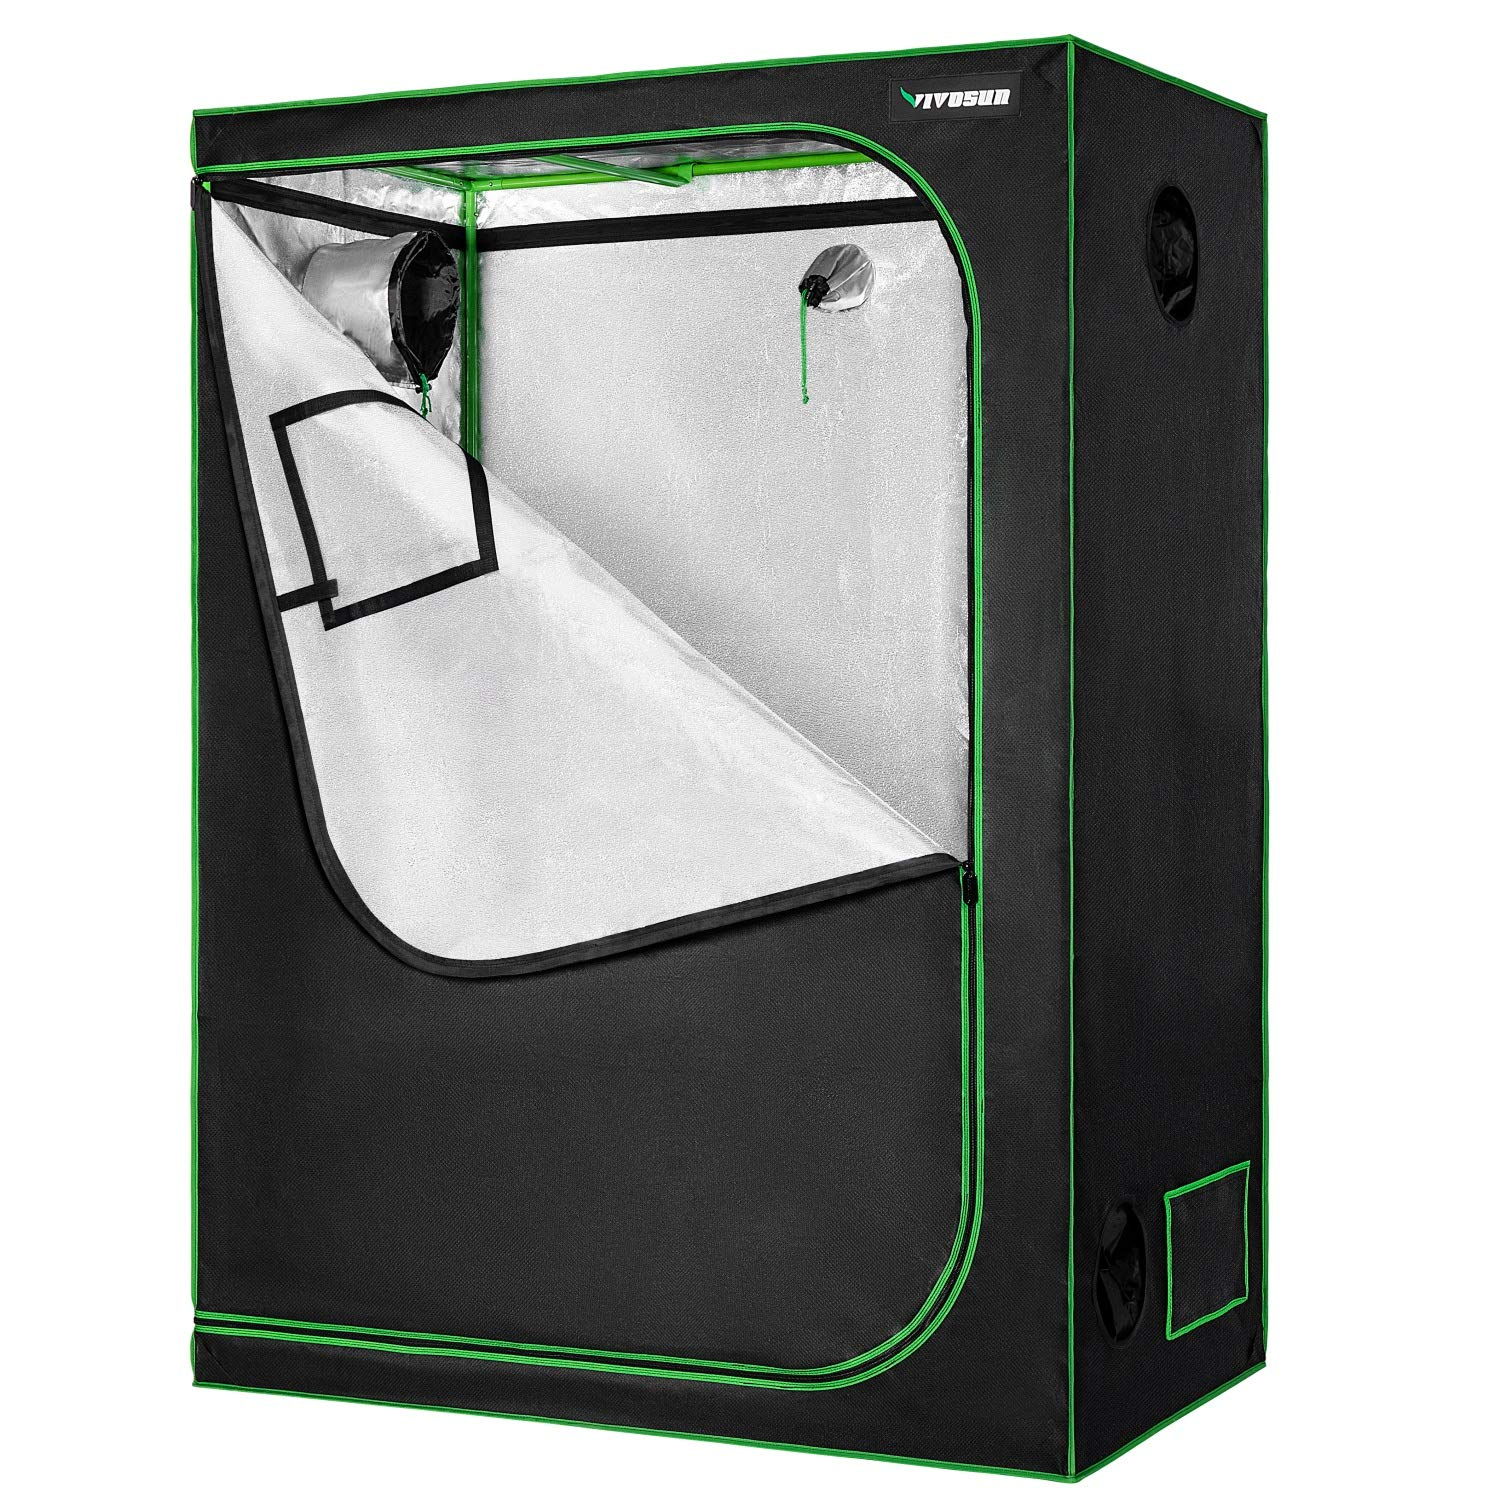 VIVOSUN 48 x24 x60 Mylar Hydroponic Grow Tent with Observation Window and Floor Tray for Indoor Plant Growing 2 x4